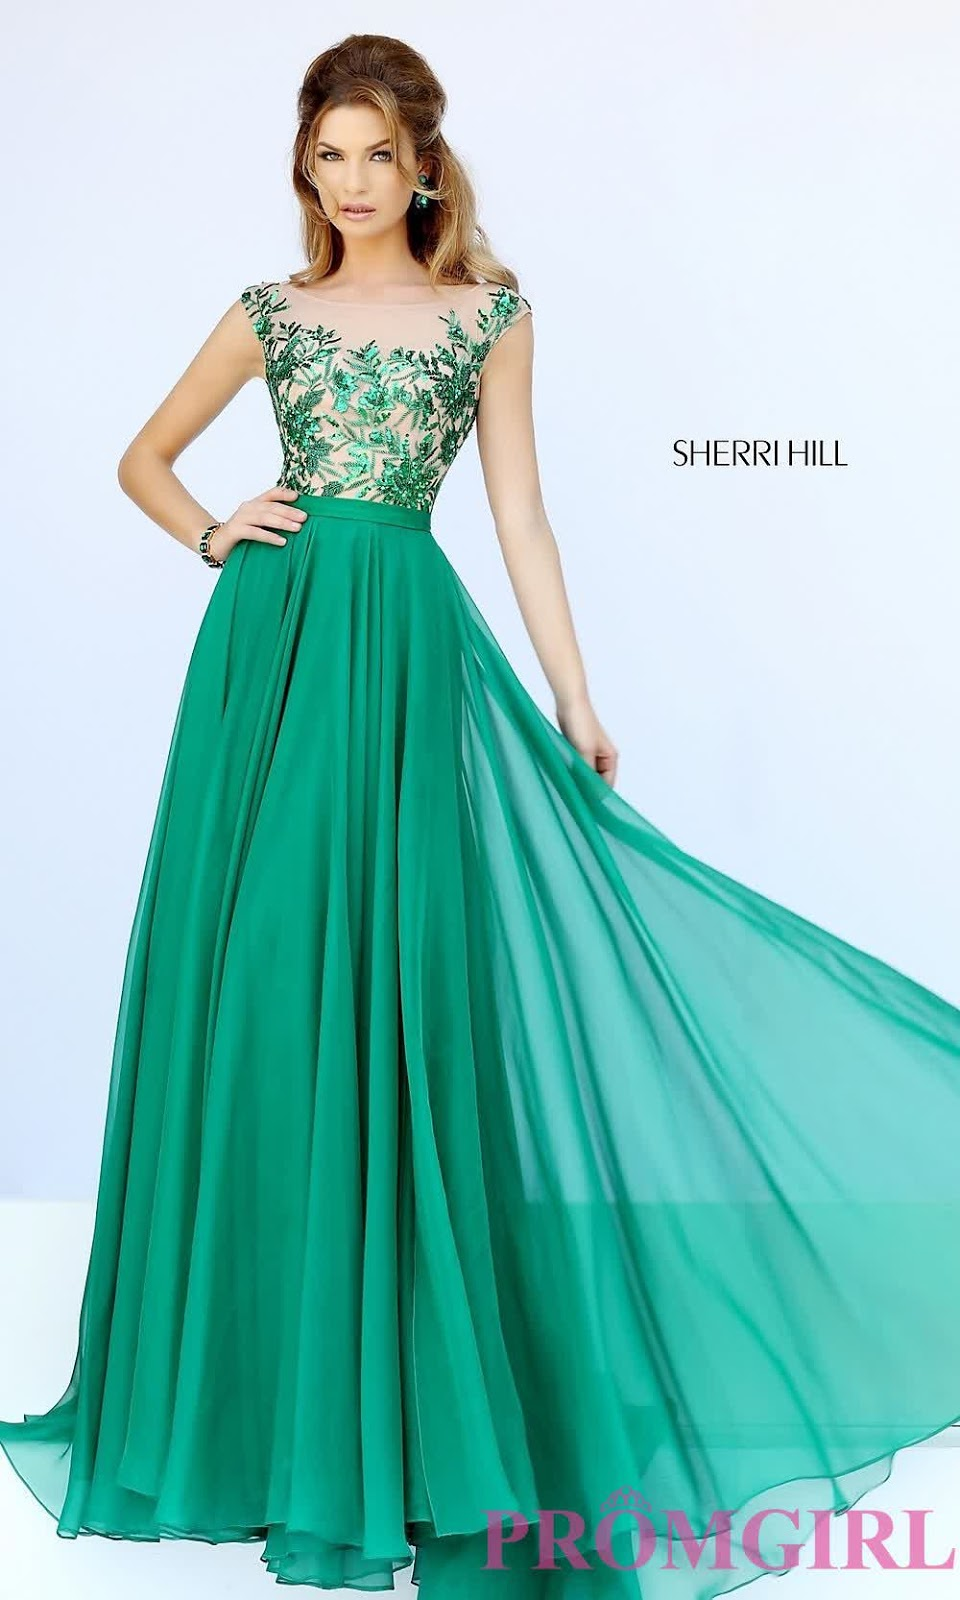 Fashionable Modern Prom Dresses ; Emerald Green | inspiration of ...